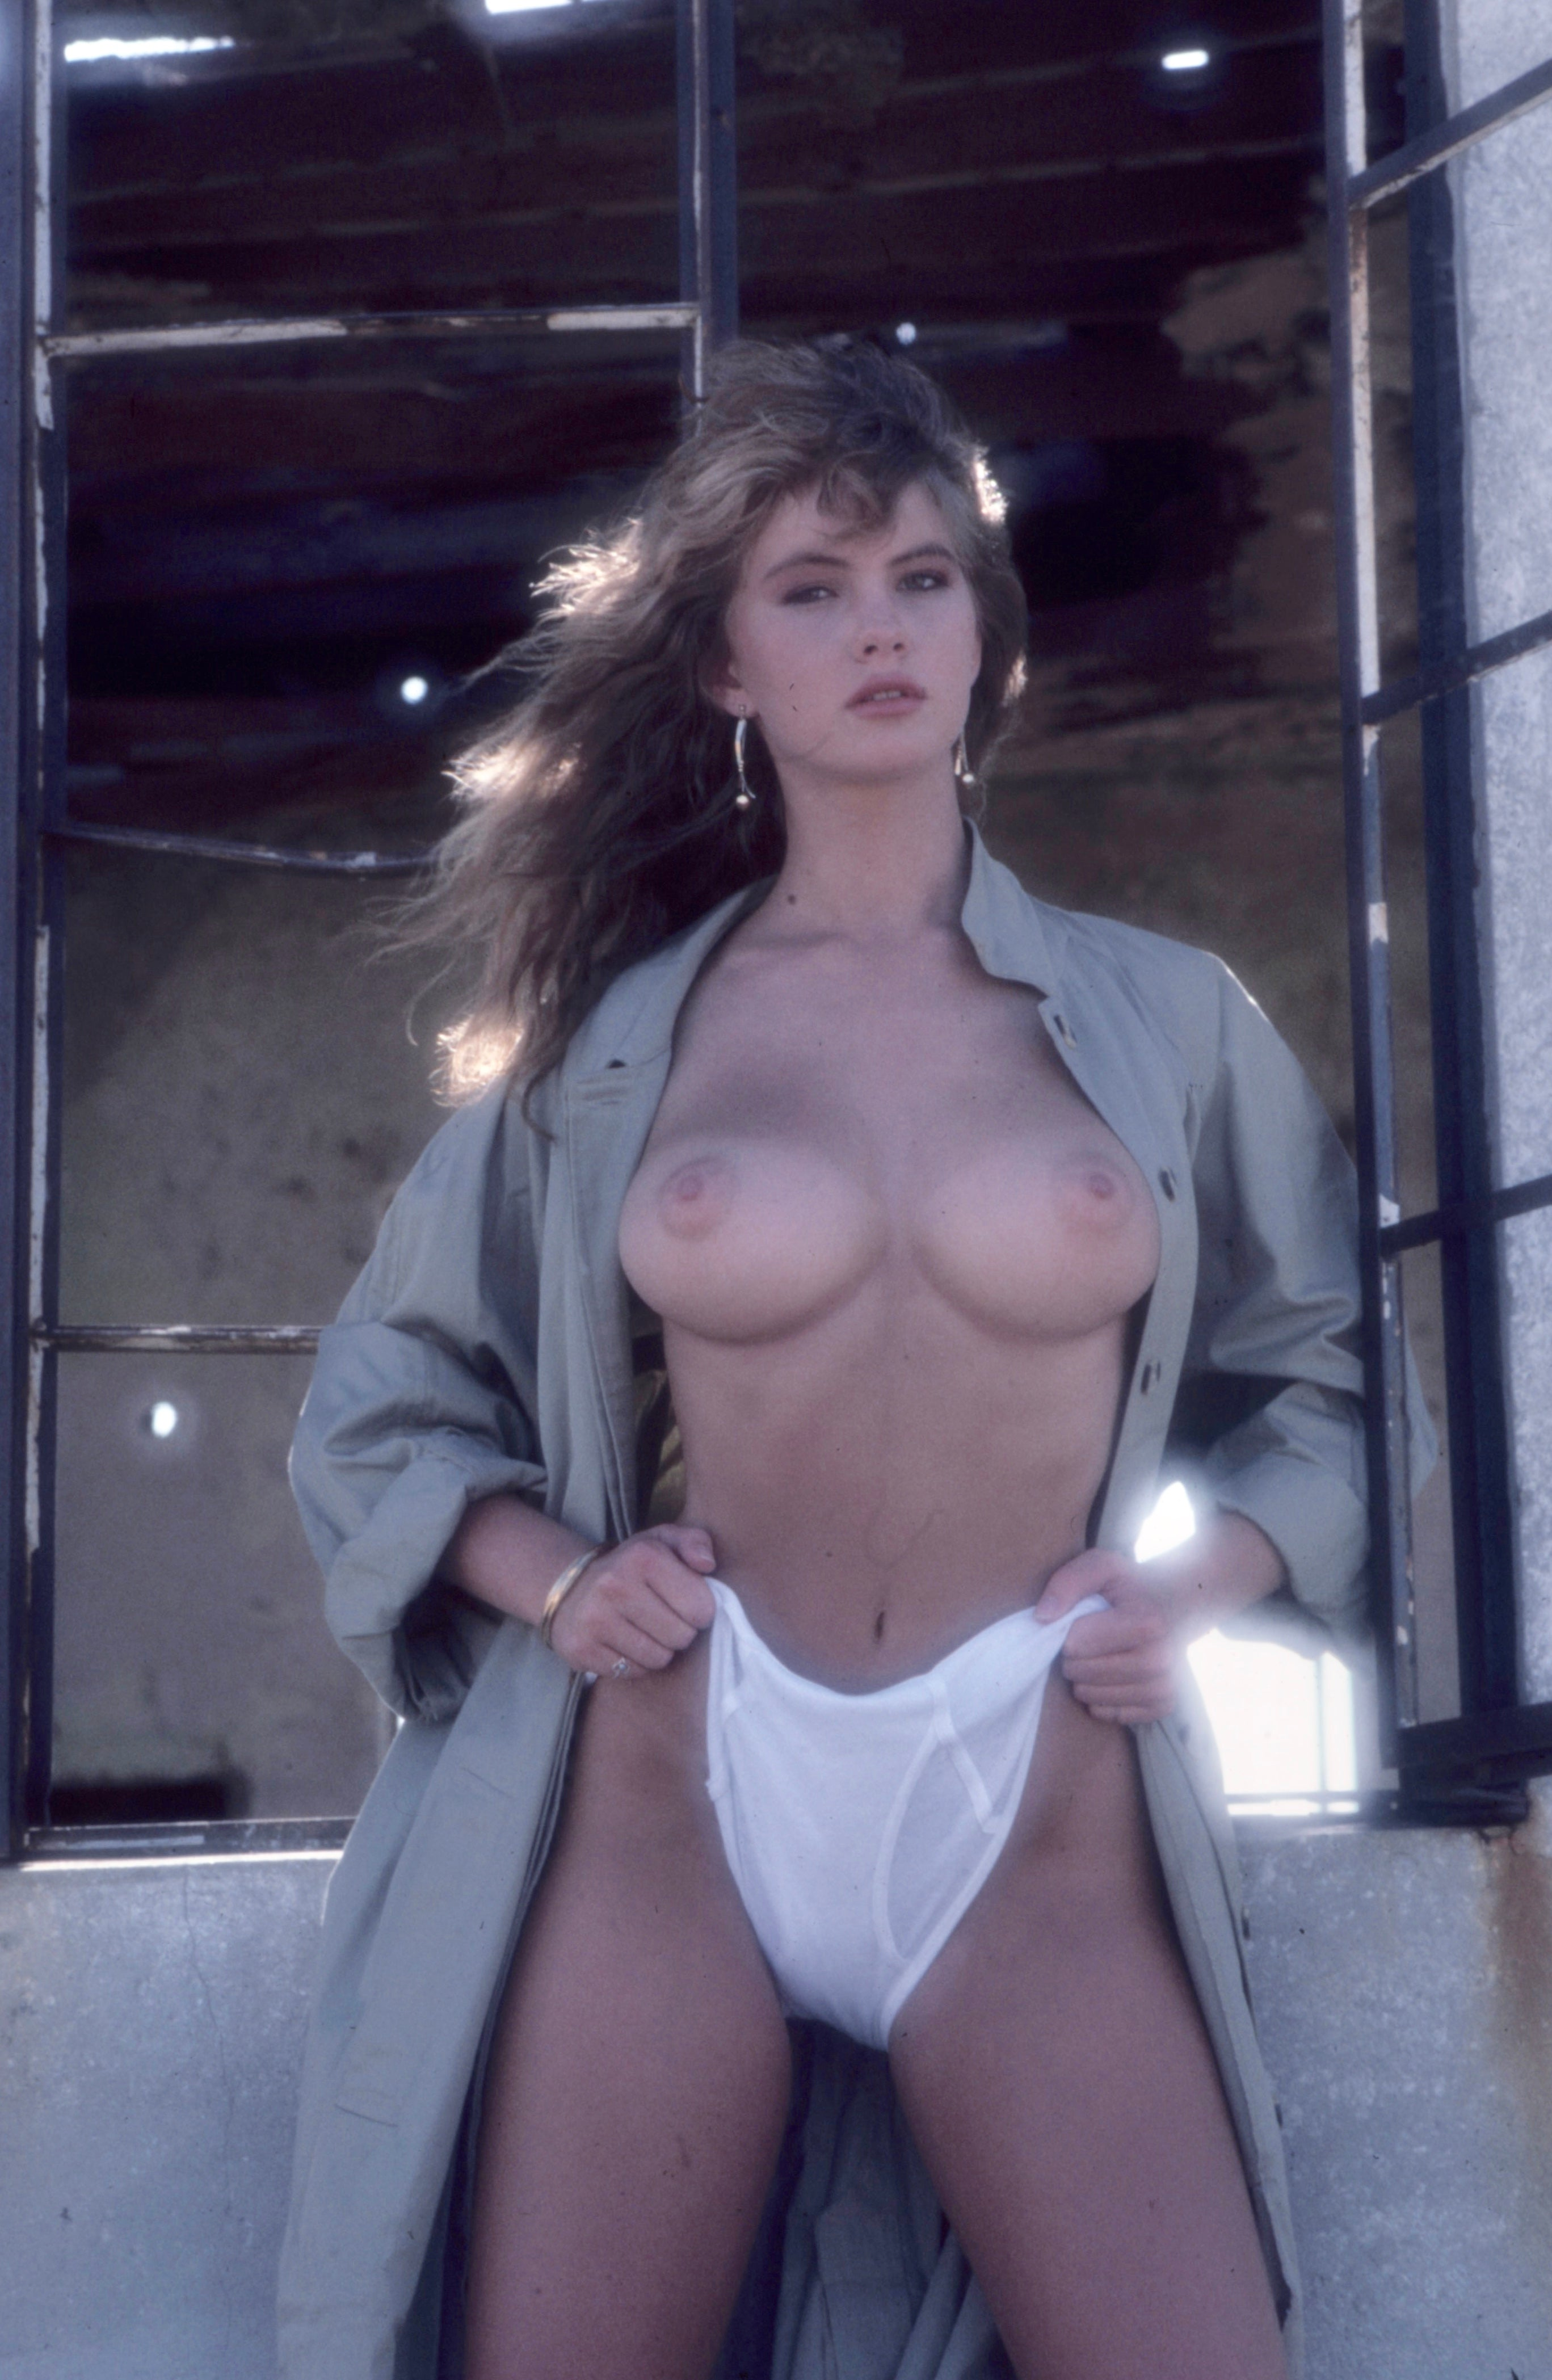 Joanne Szmereta breast exposed in trench coat